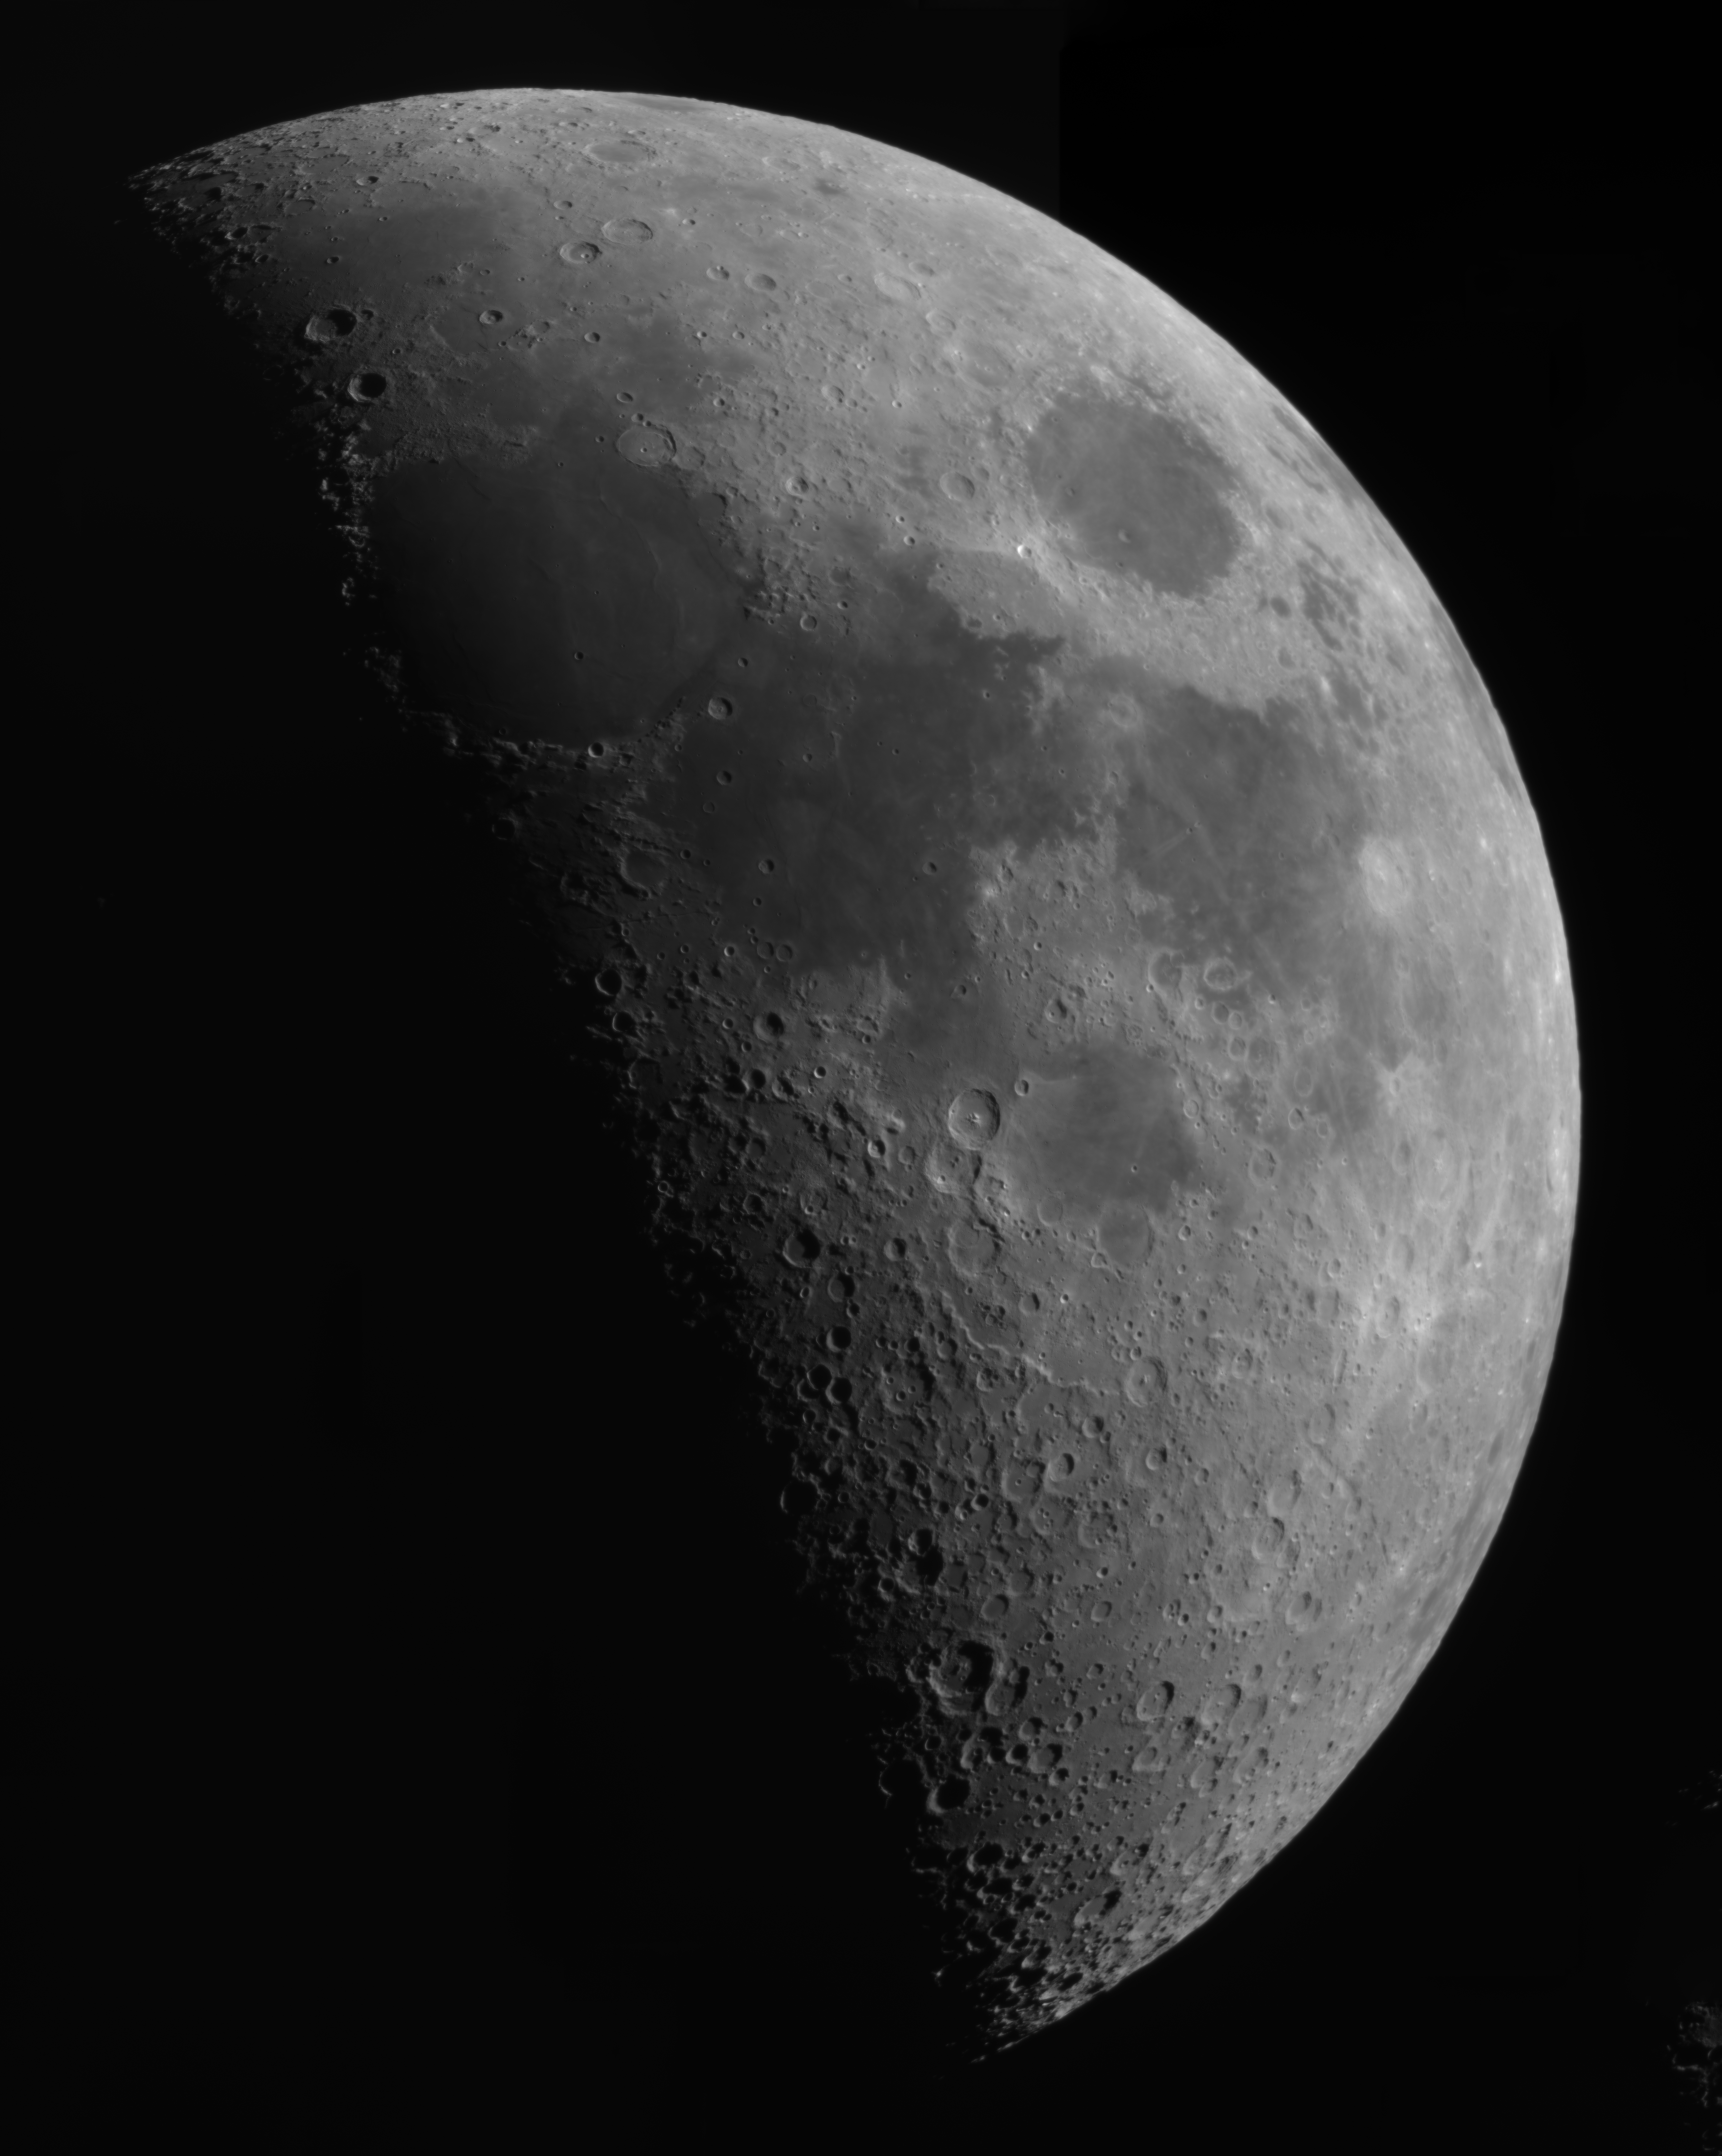 Moon_223214_lapl4_ap595_out_stitch-2.jpg